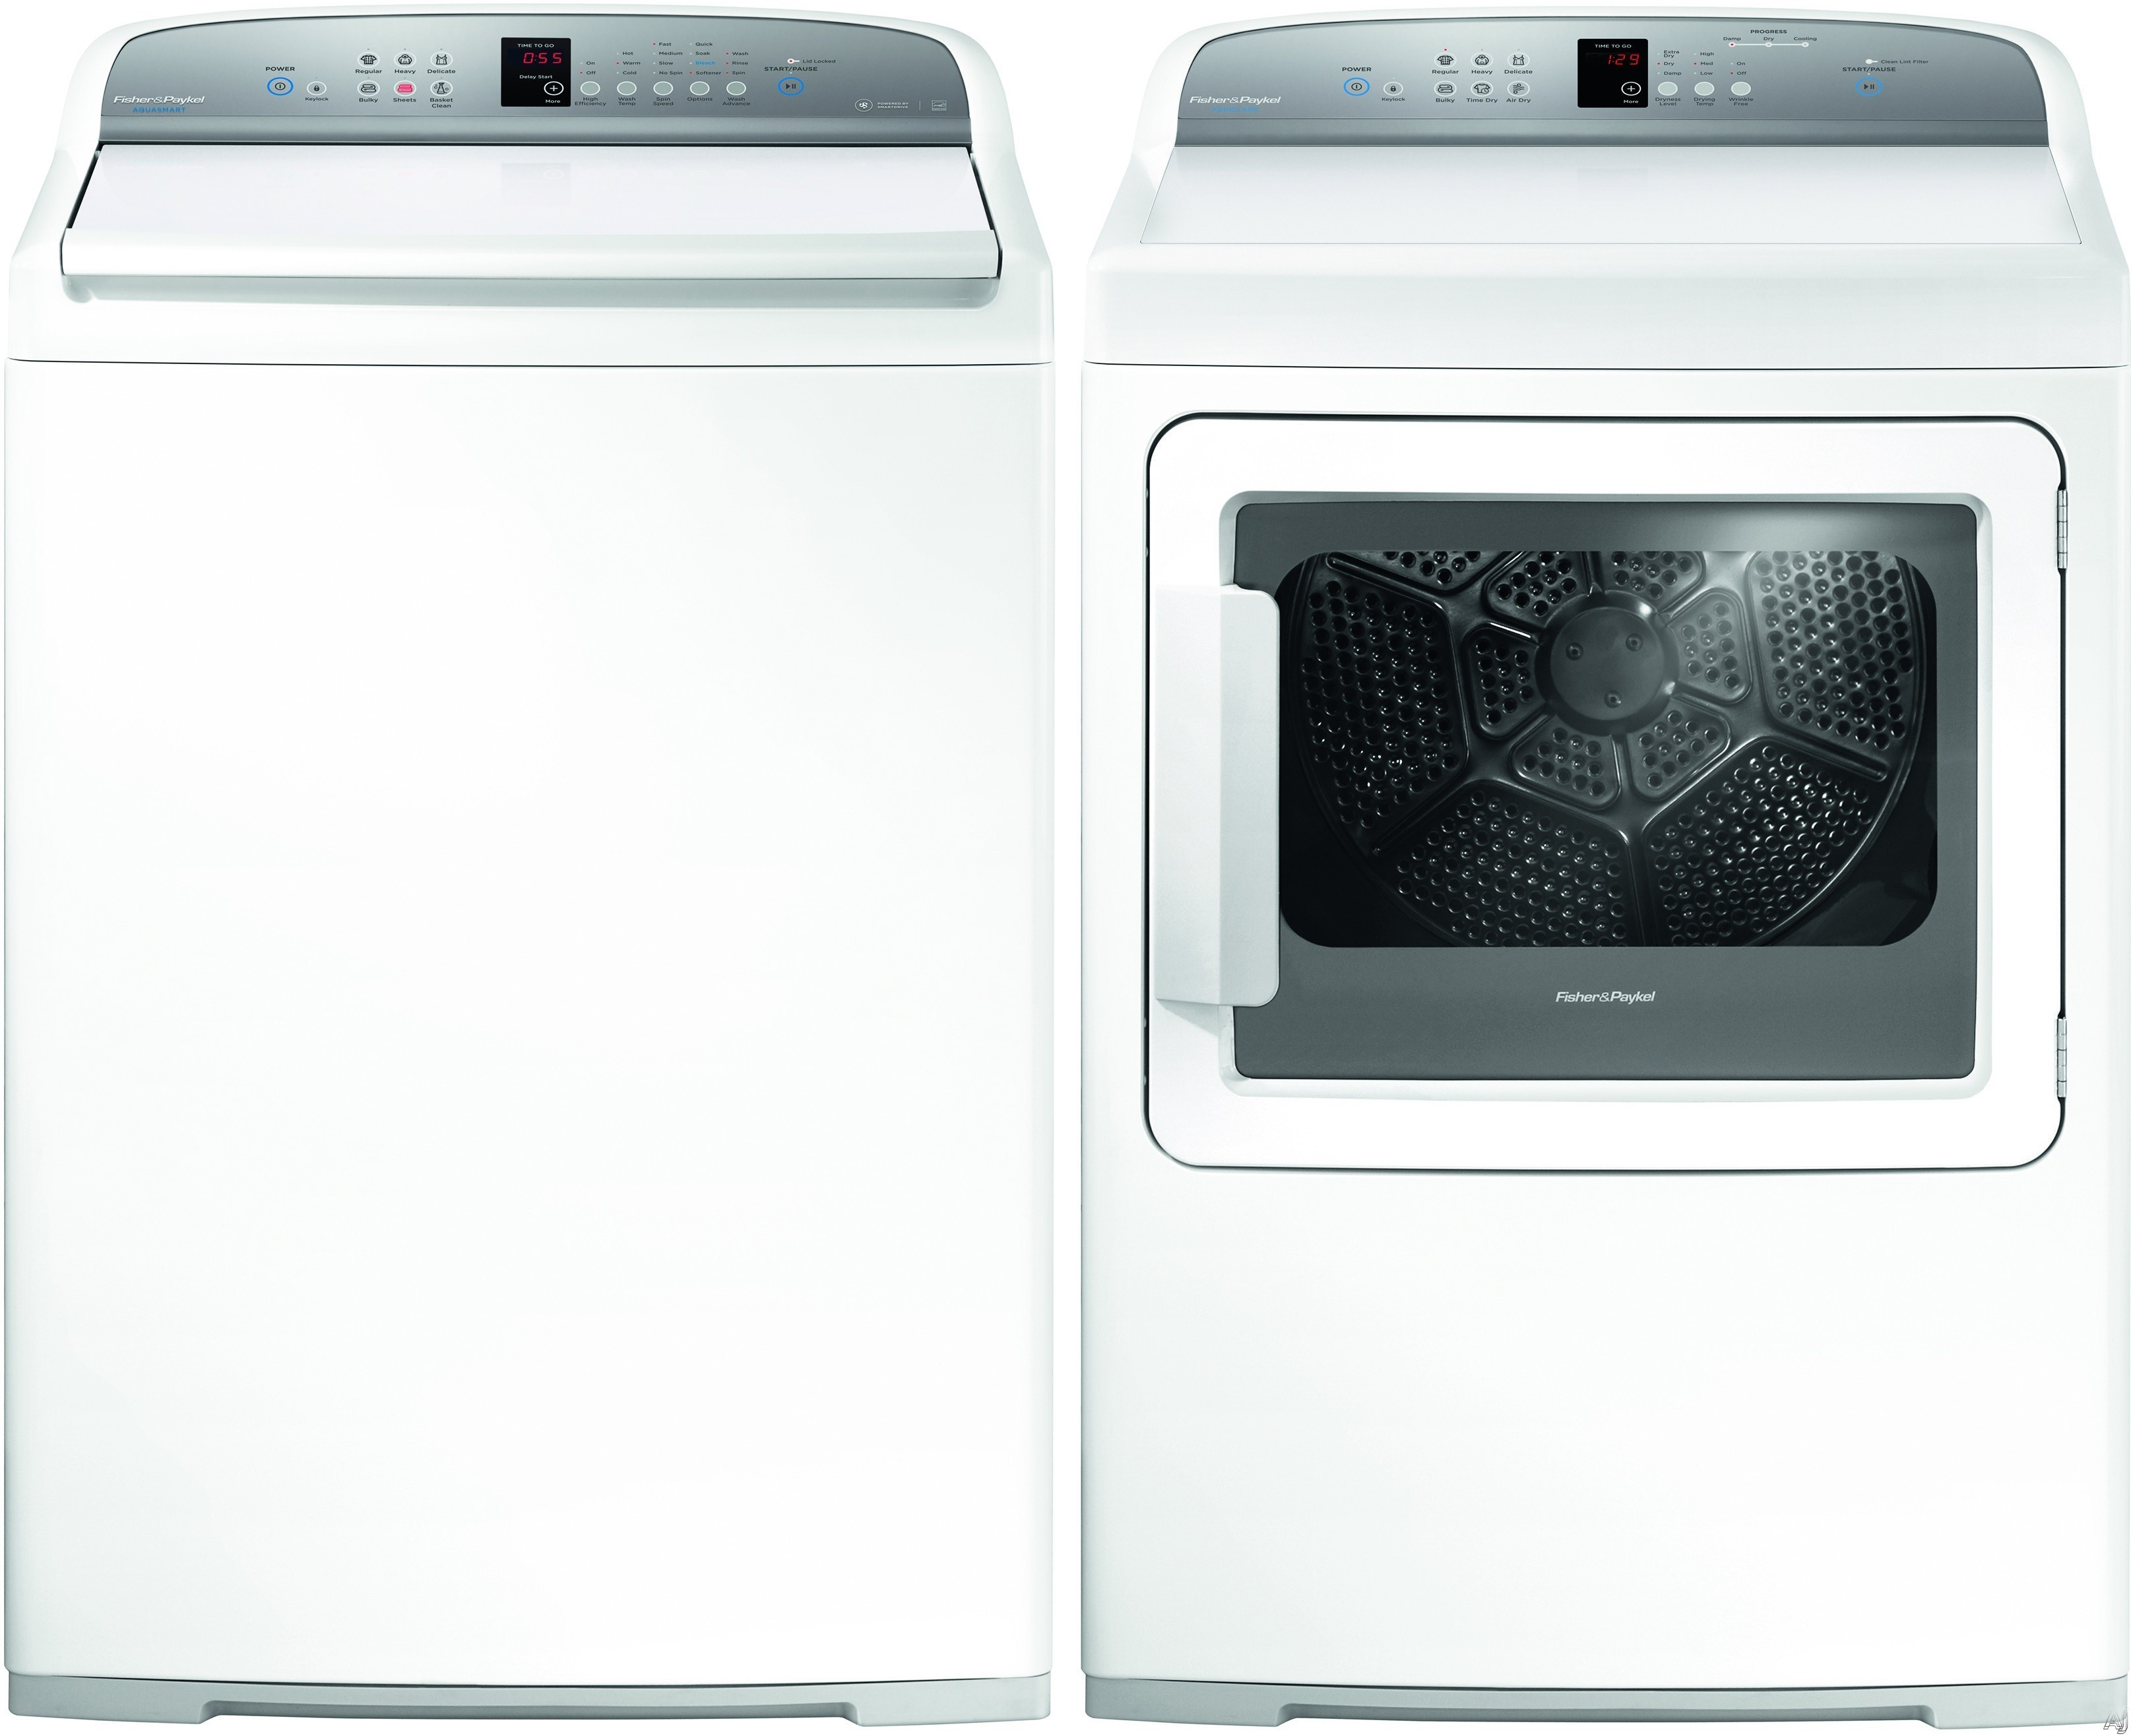 Fisher & Paykel AquaSmart FPWADRGW14027 Side-by-Side Washer & Dryer Set with Top Load Washer and Gas Dryer in White